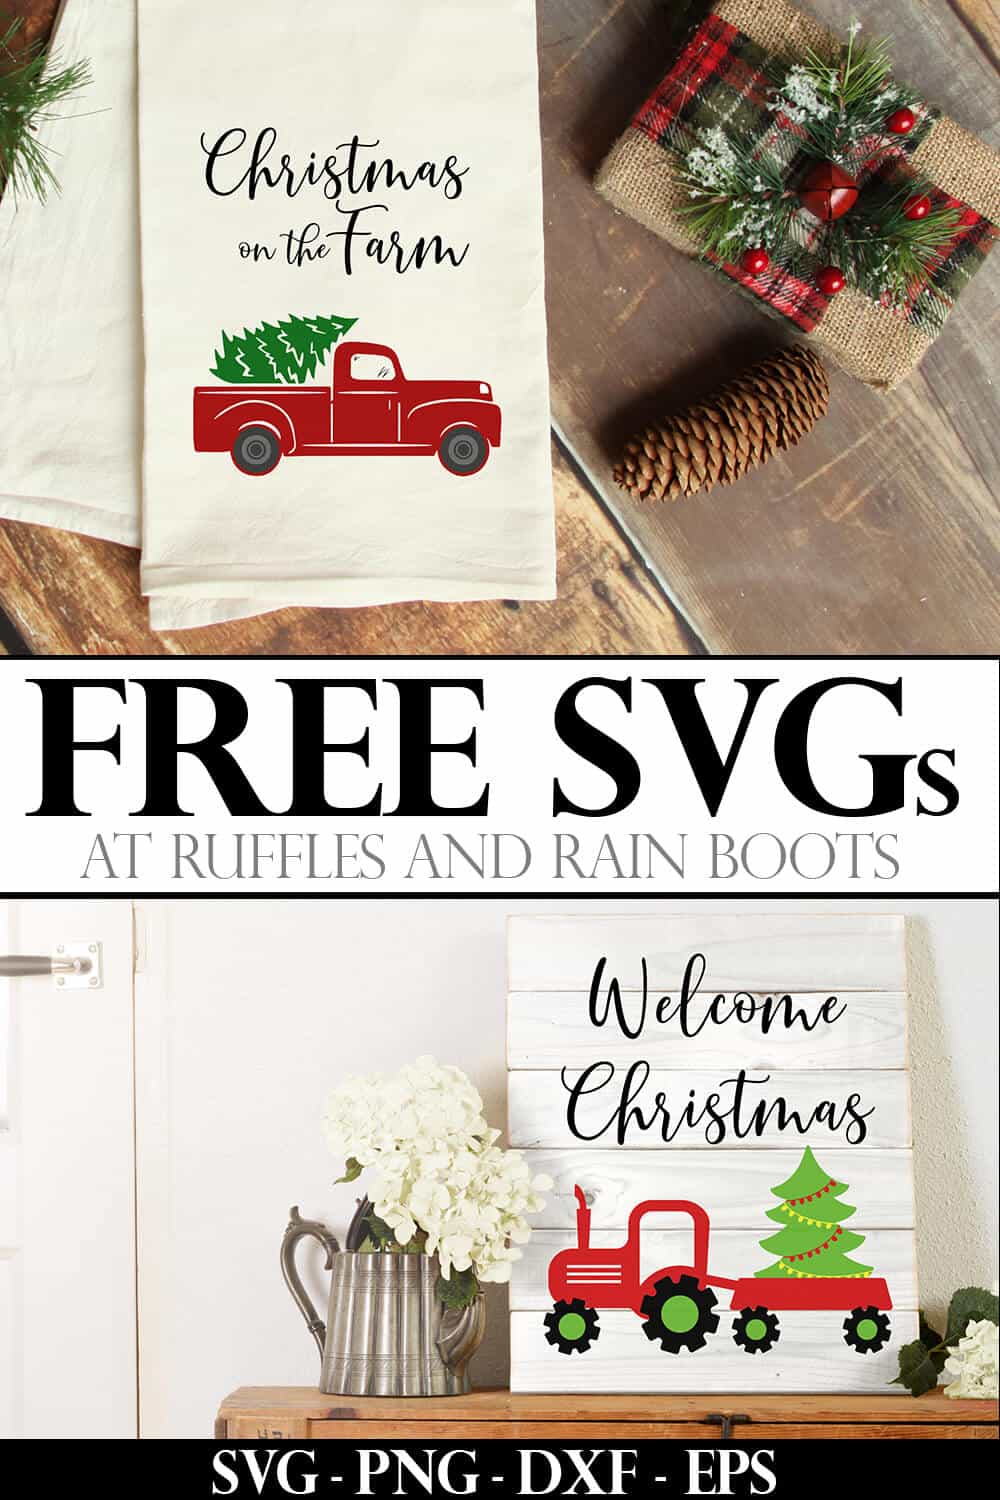 photo collage of christmas farm truck svgs on a towel and a sign with text which reads free svgs